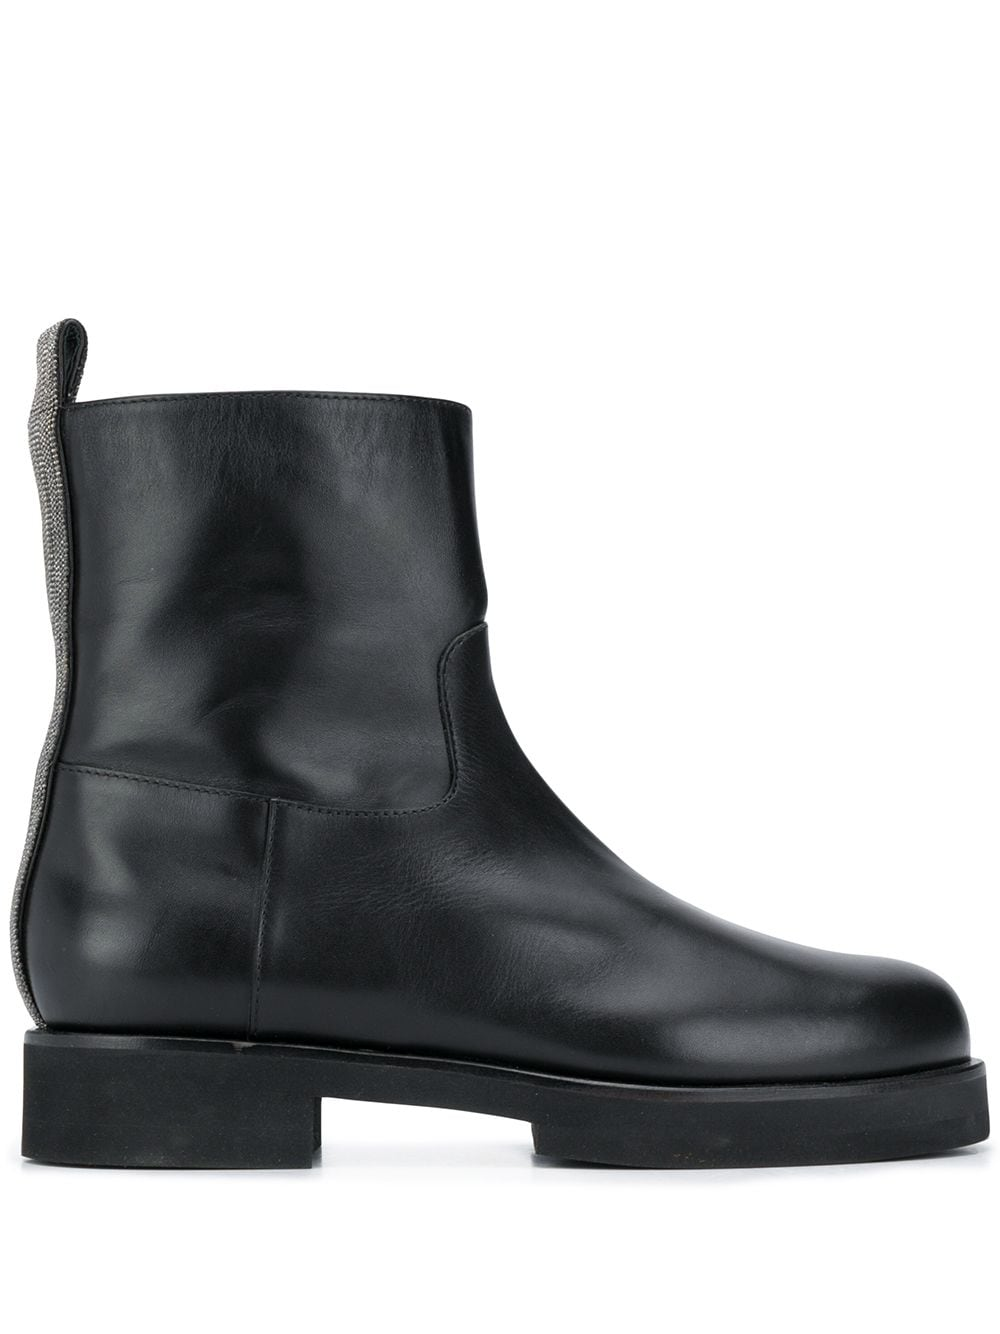 Martina Leather Ankle Boots